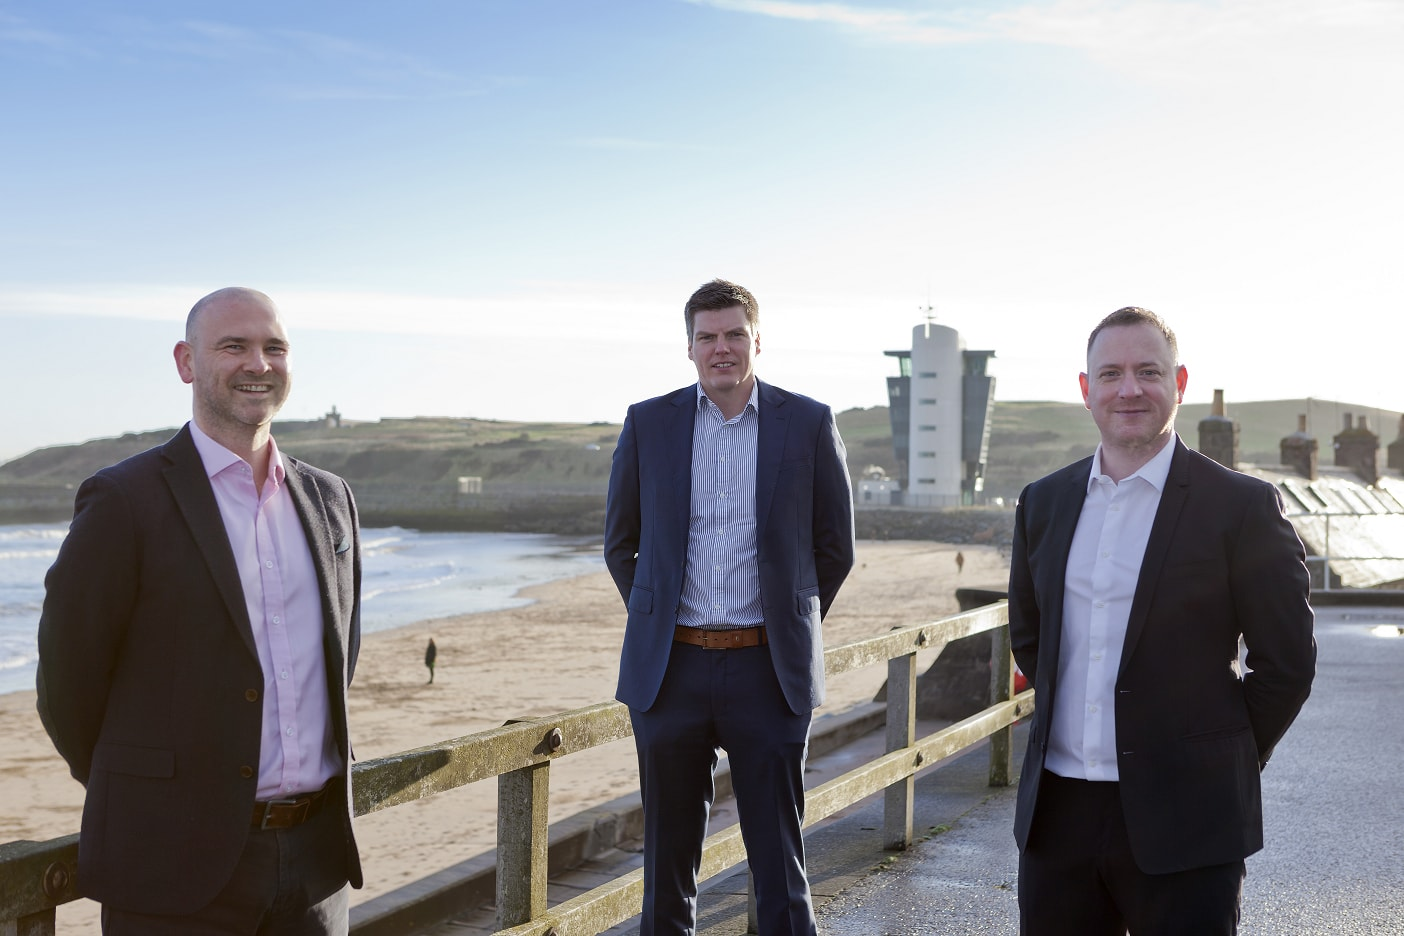 Three businessmen pose together at the beach